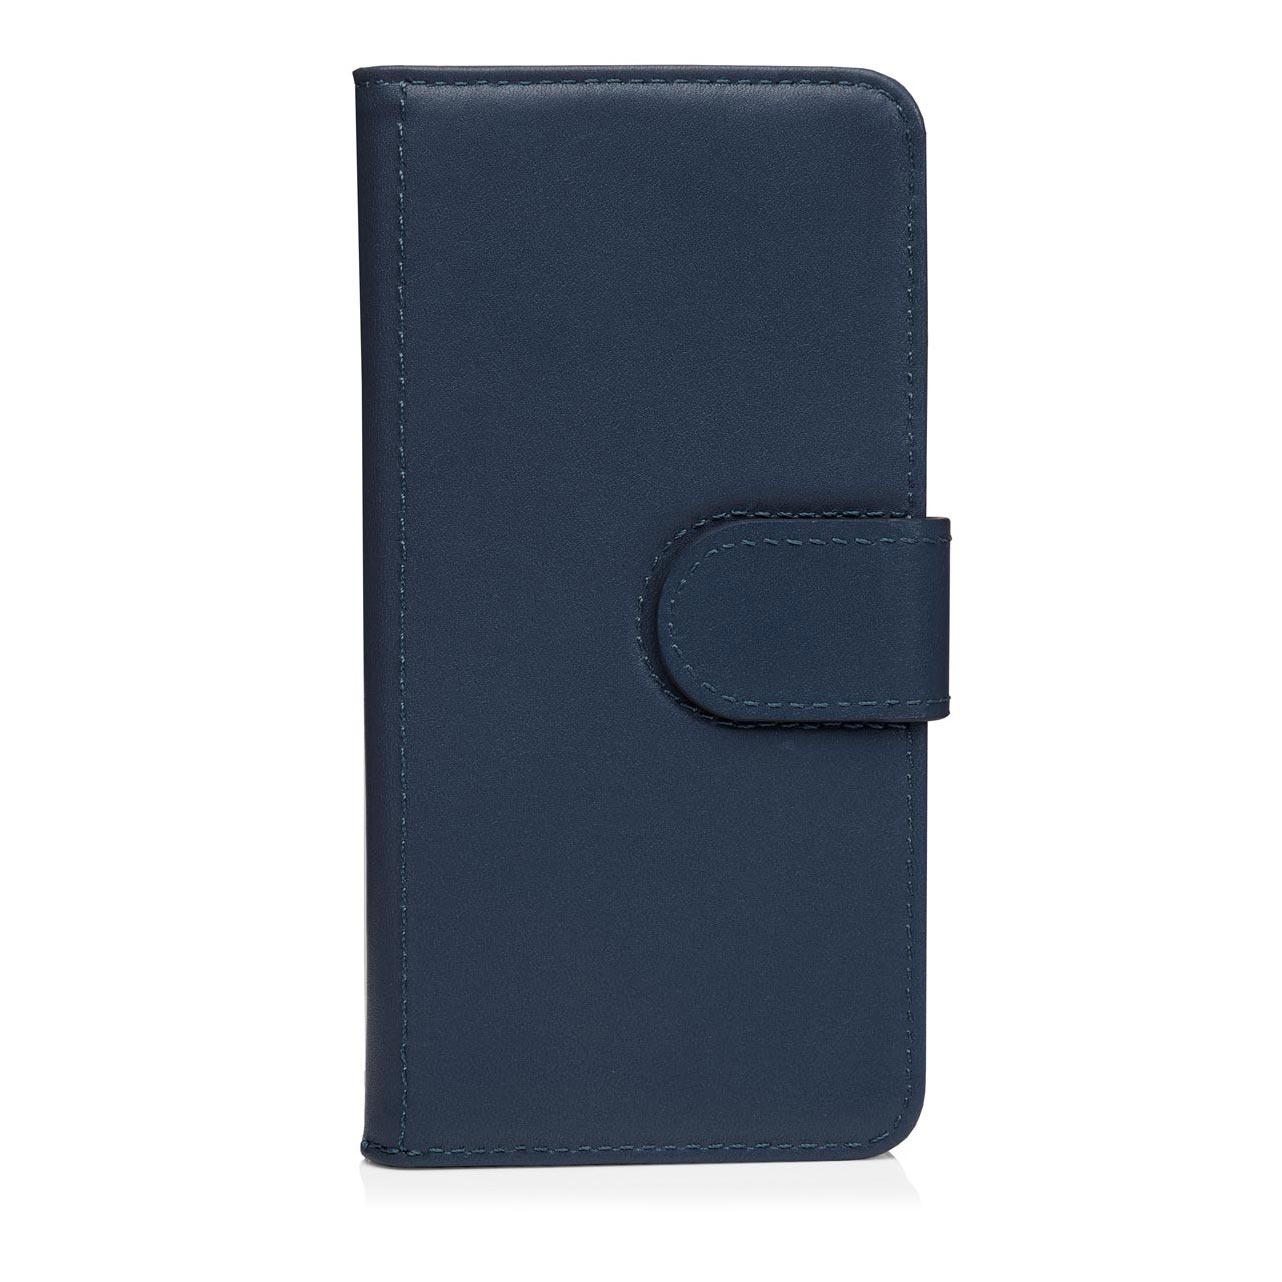 huge selection of b42ae b22b8 iPhone 7 Wallet Case [LRG] Magnetic - Navy (Also Fits iPhone 6/6S and  iPhone 8)